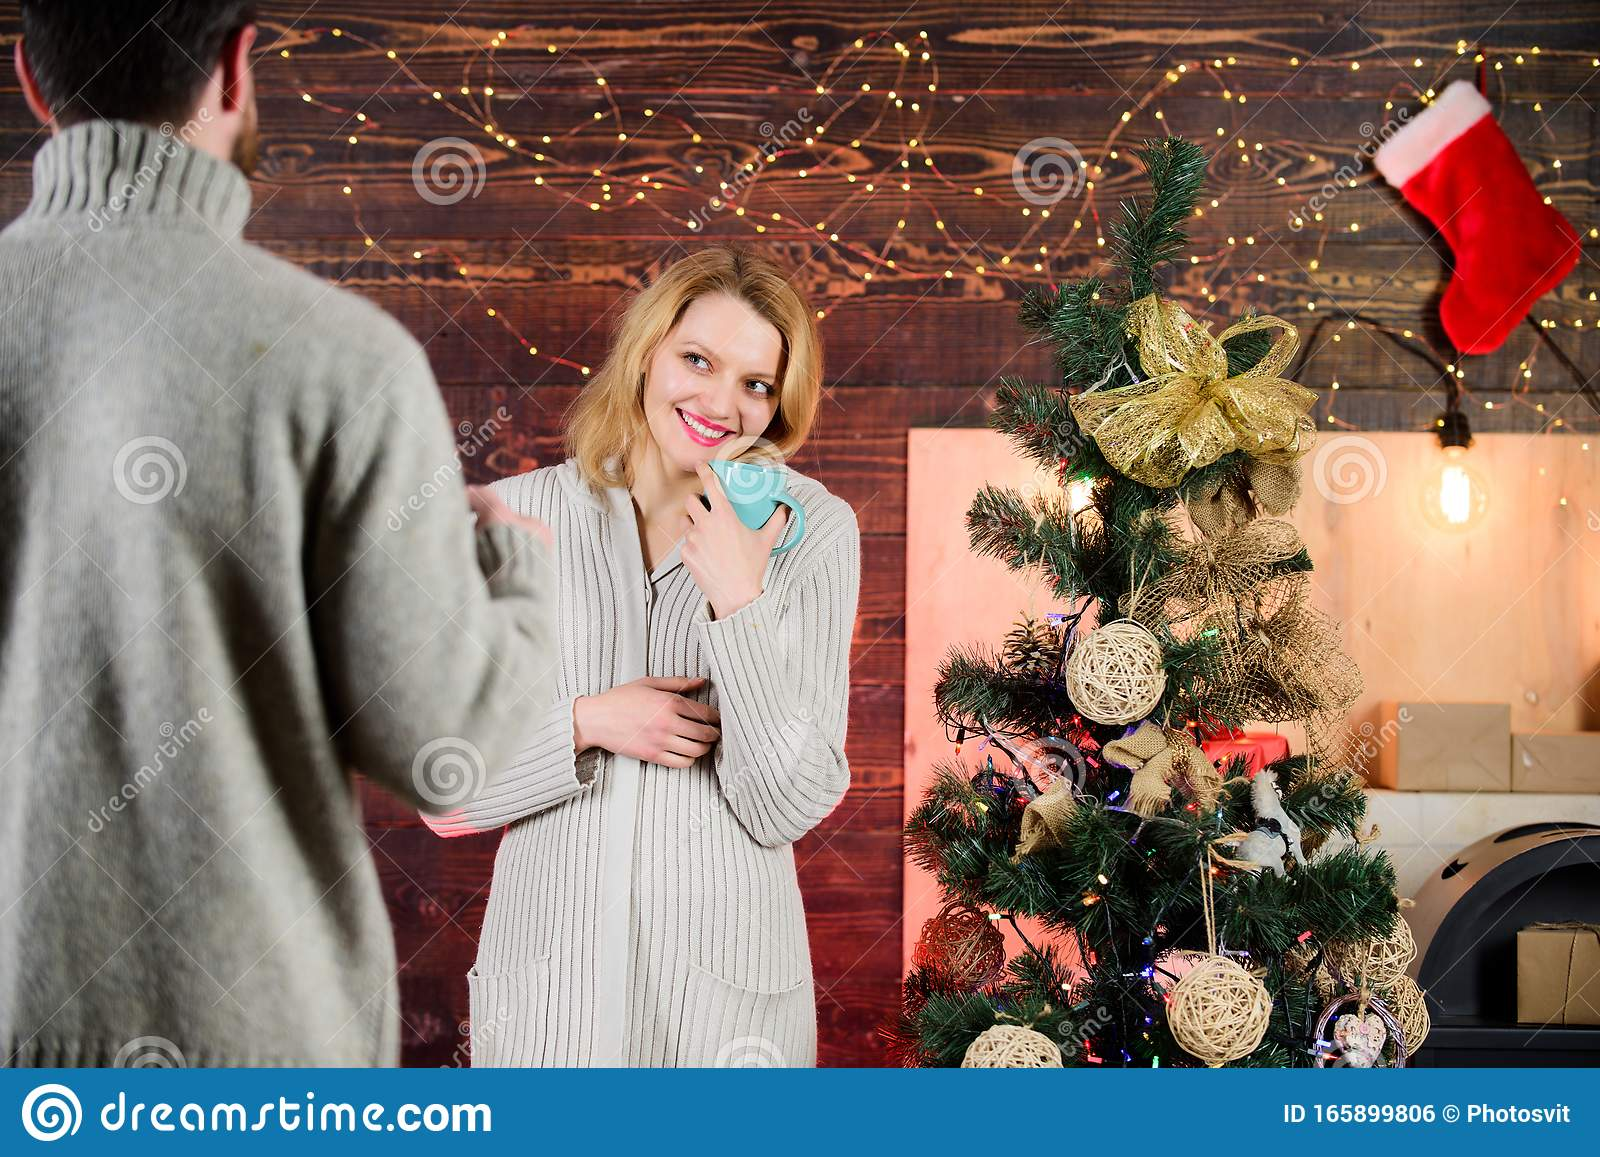 Magic Between Them Couple Love At Christmas Tree Some Fun Things To Experience With Family On Christmas Eve Feeling Stock Photo Image Of Flirting Romantic 165899806